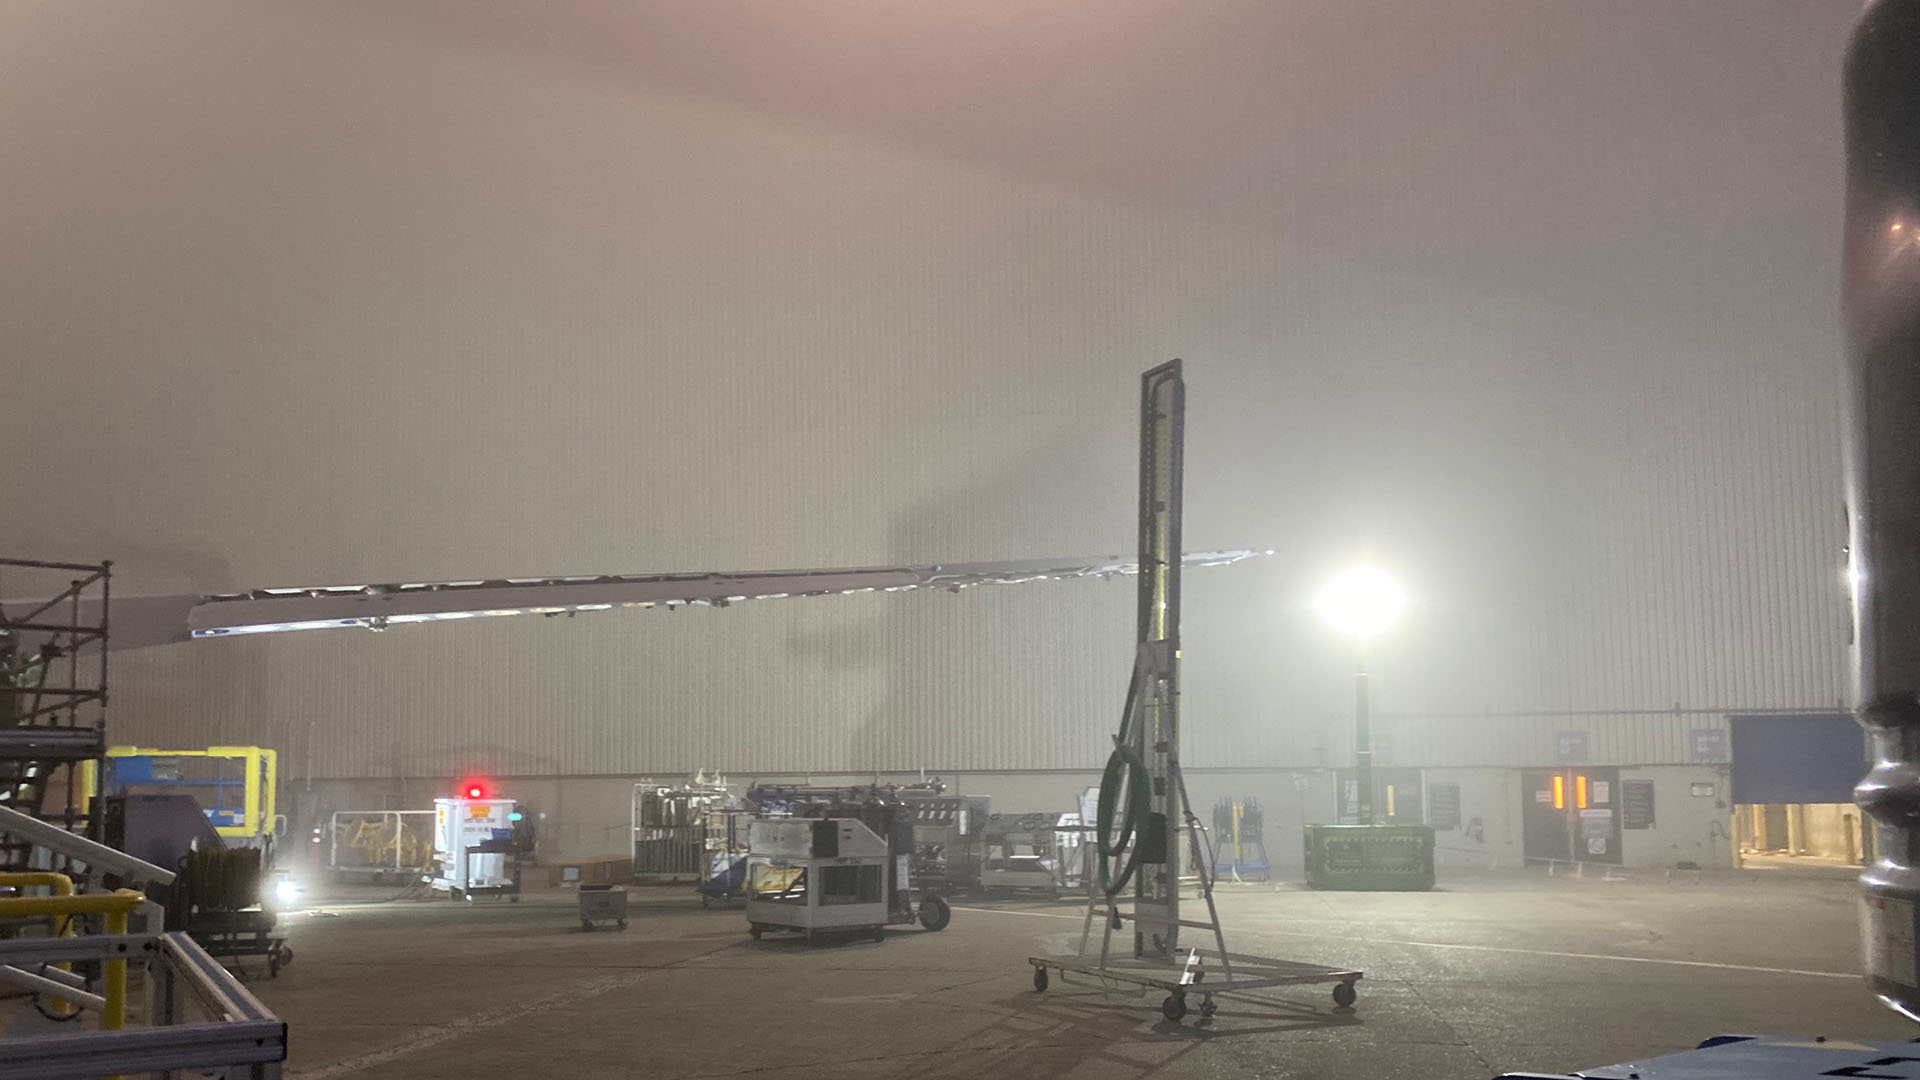 brickskid, brick skid, zero-emissions, explosion proof, portable light tower, flightline, under wing, cdi